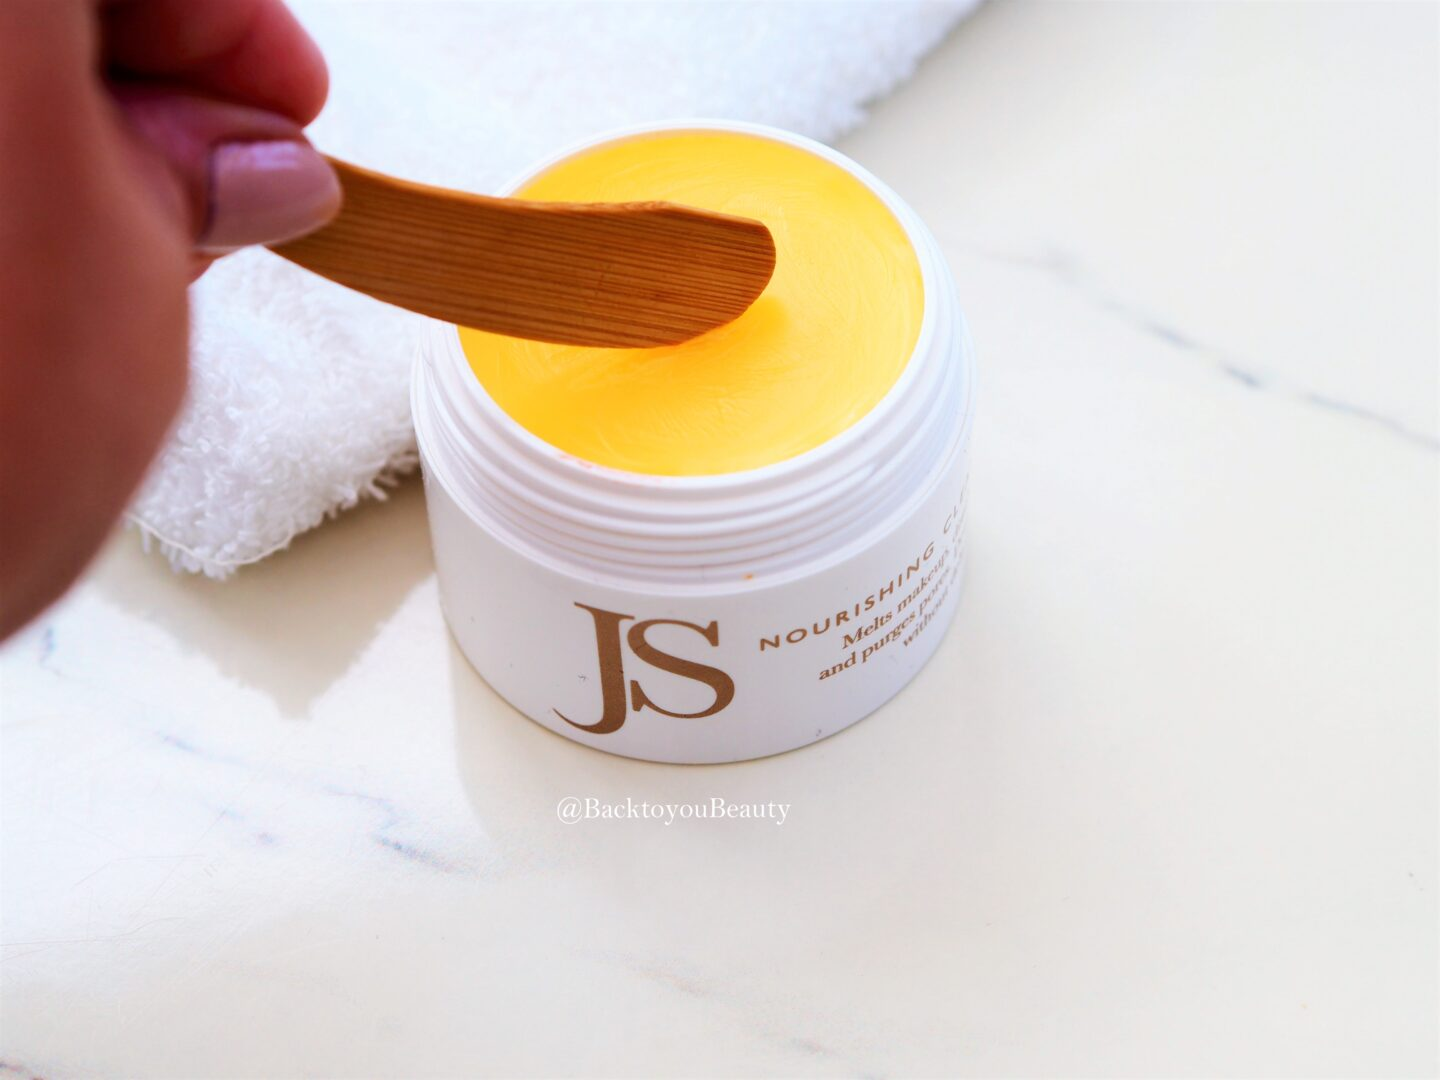 Jane Scrivner Nourishing Cleanser